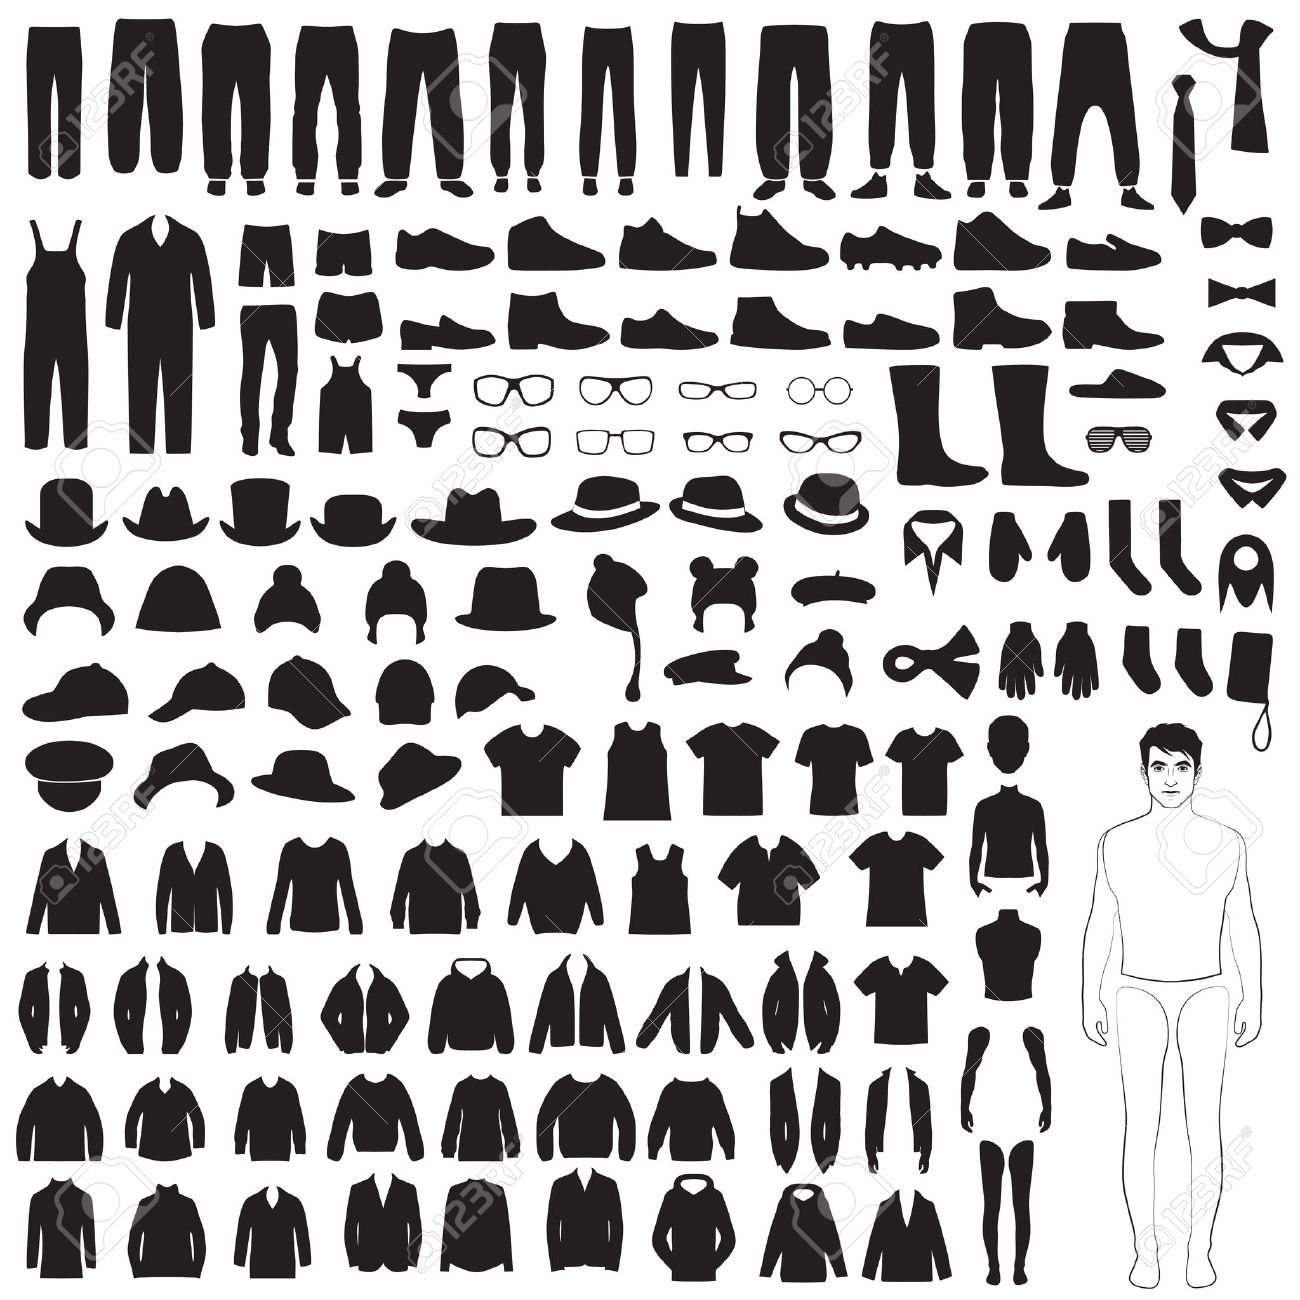 man fashion icons, paper doll, isolated clothing silhouette - 29426459